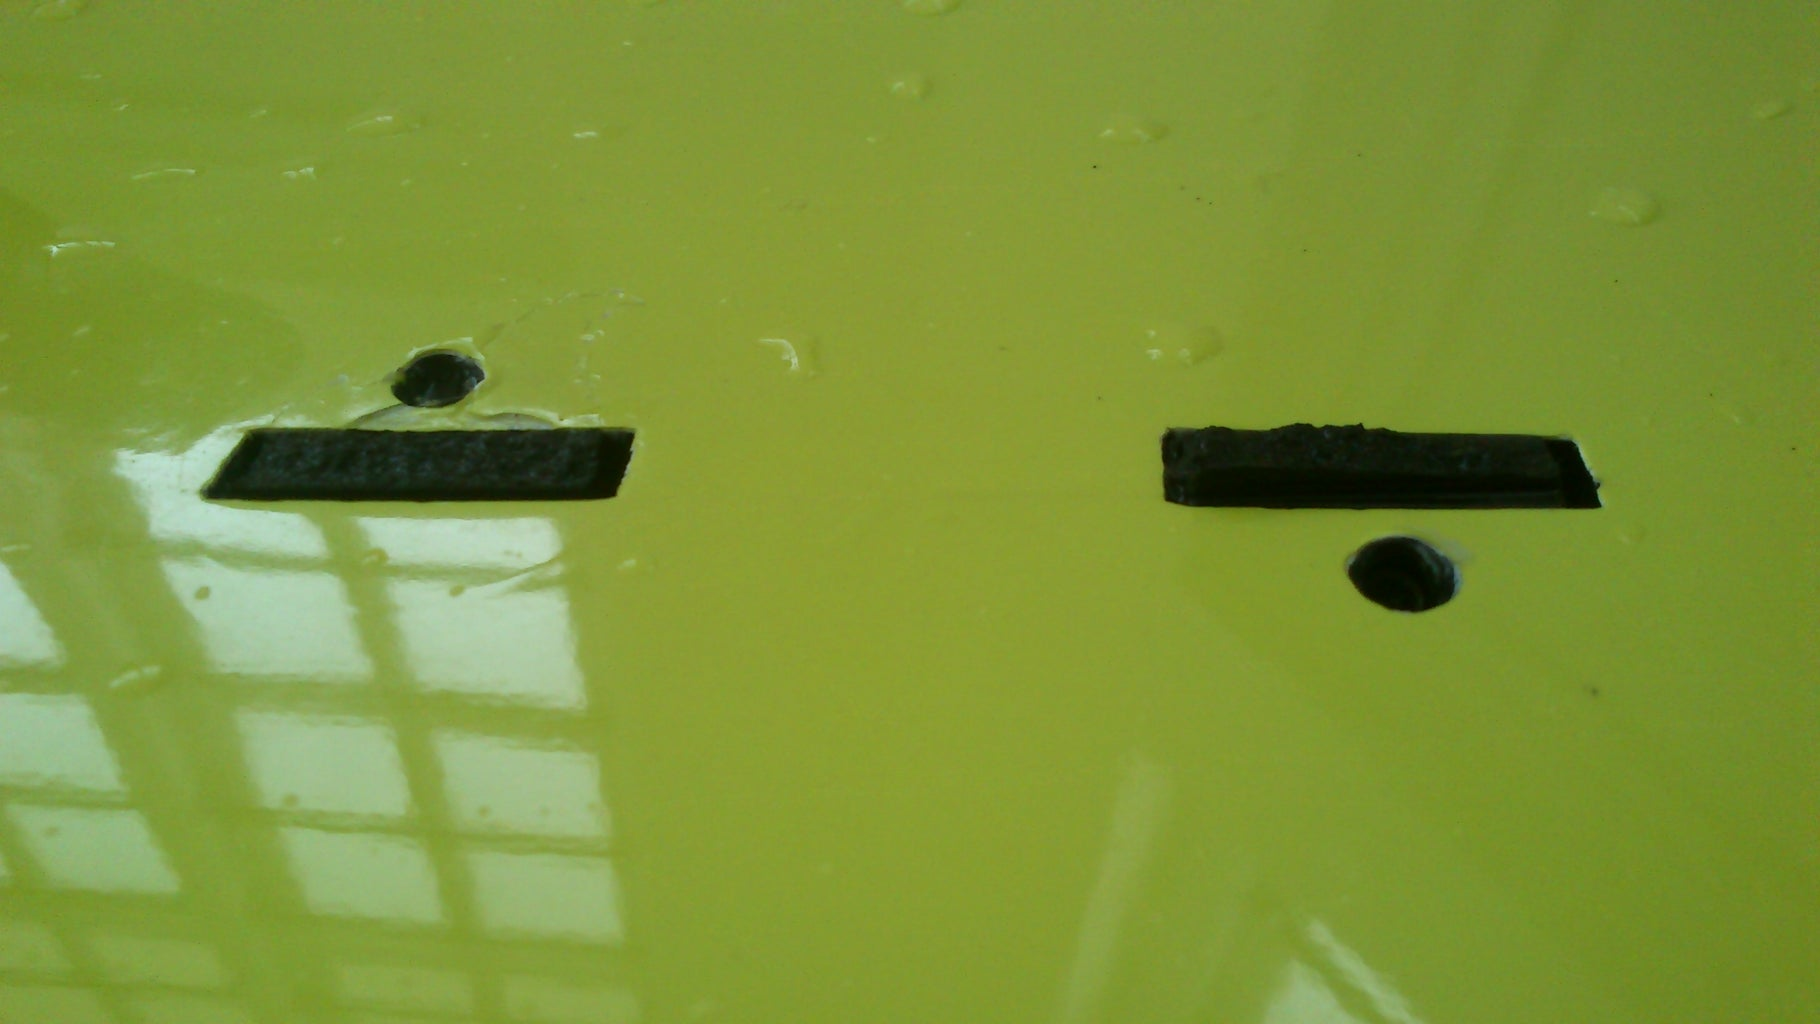 Extract Broken FCS G-5 Fin Studs From Inside the Fin Box of a Surfboard